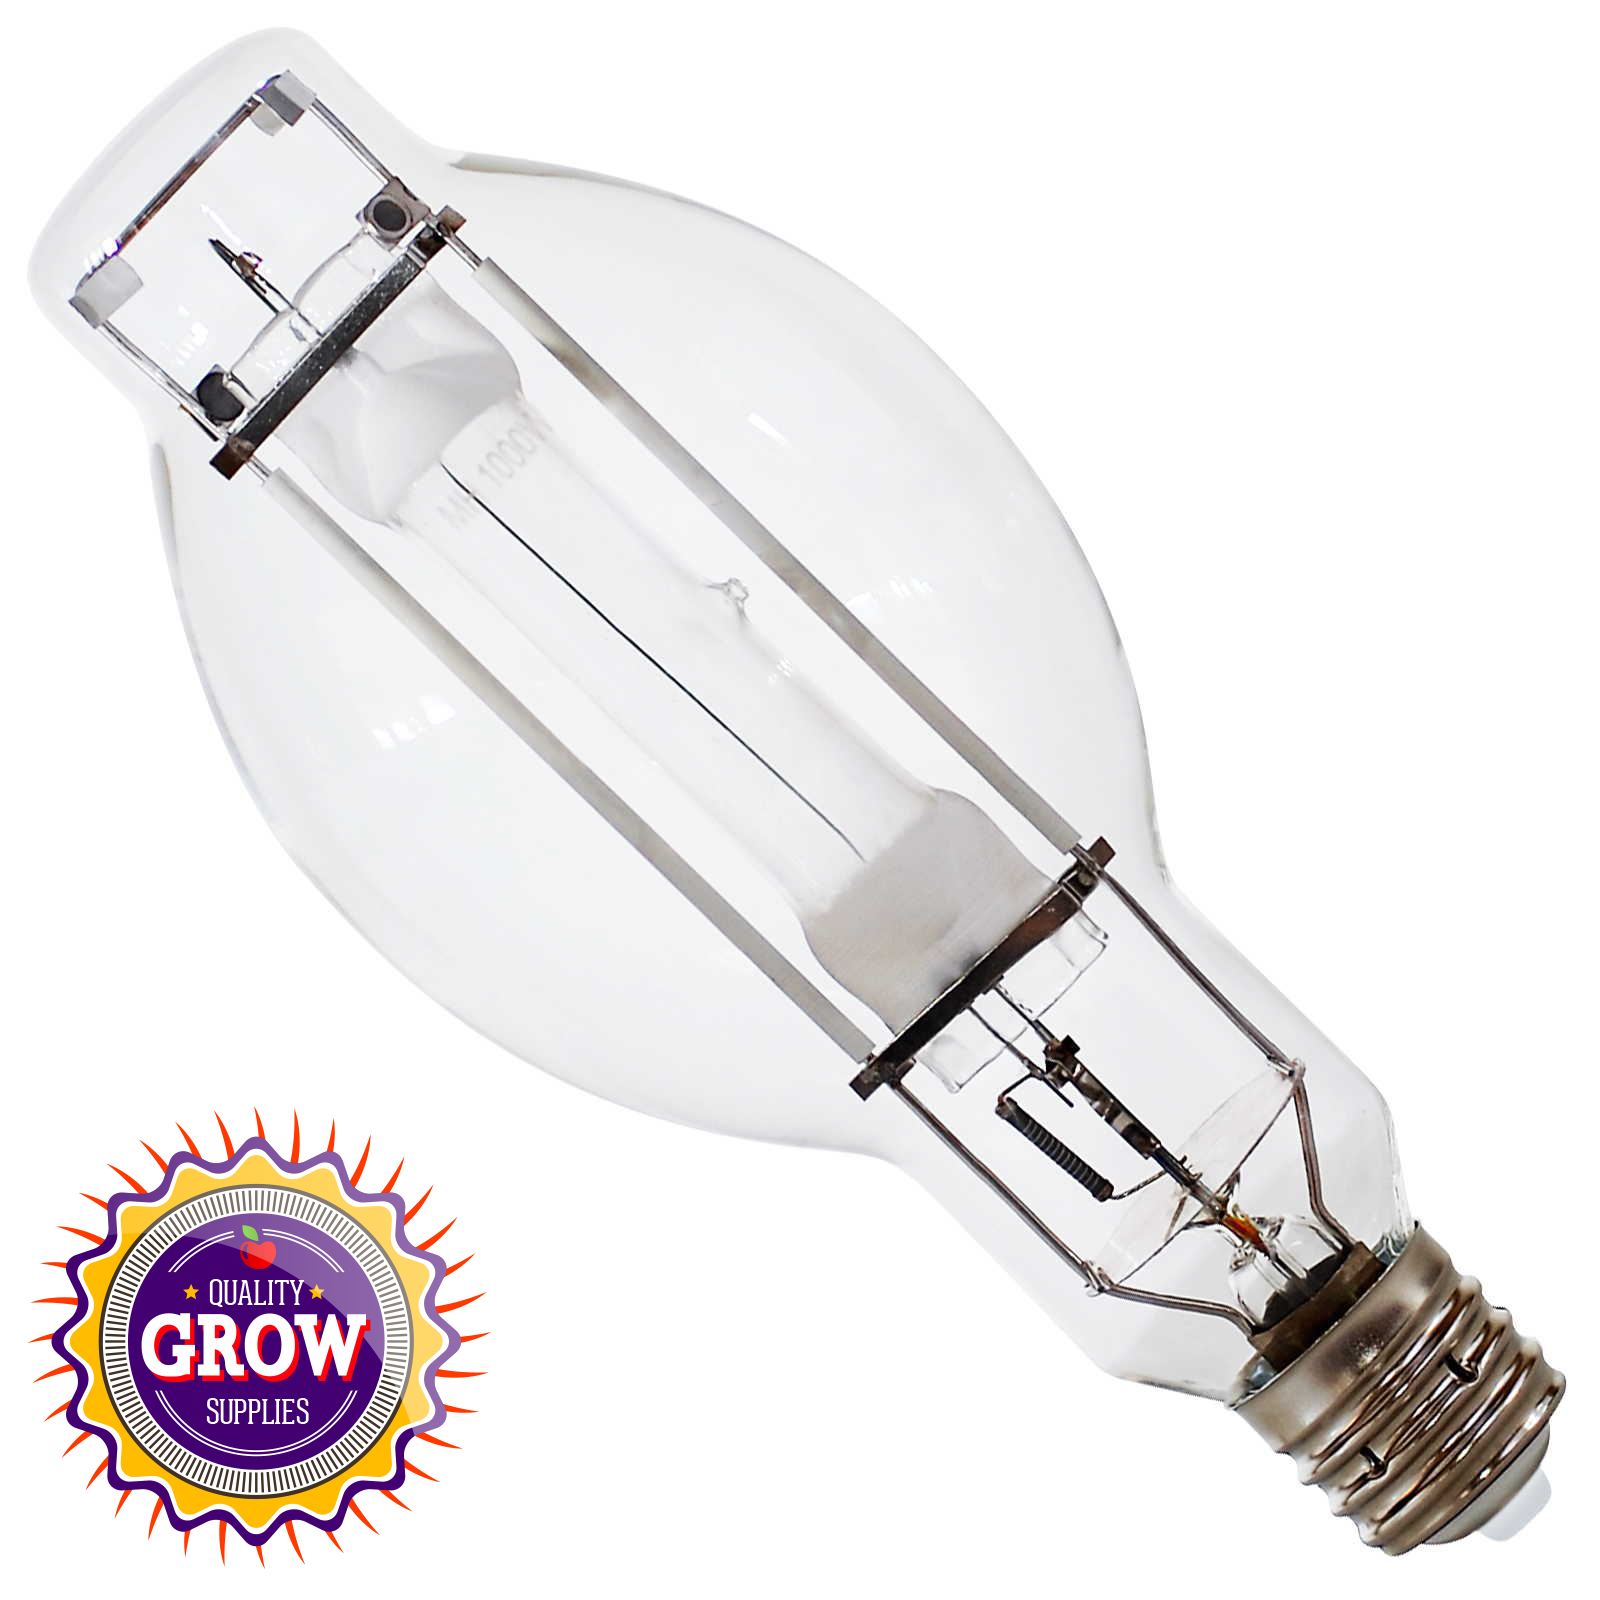 Are Metal Halide Lights Dangerous: Metal Halide Grow Light Bulb